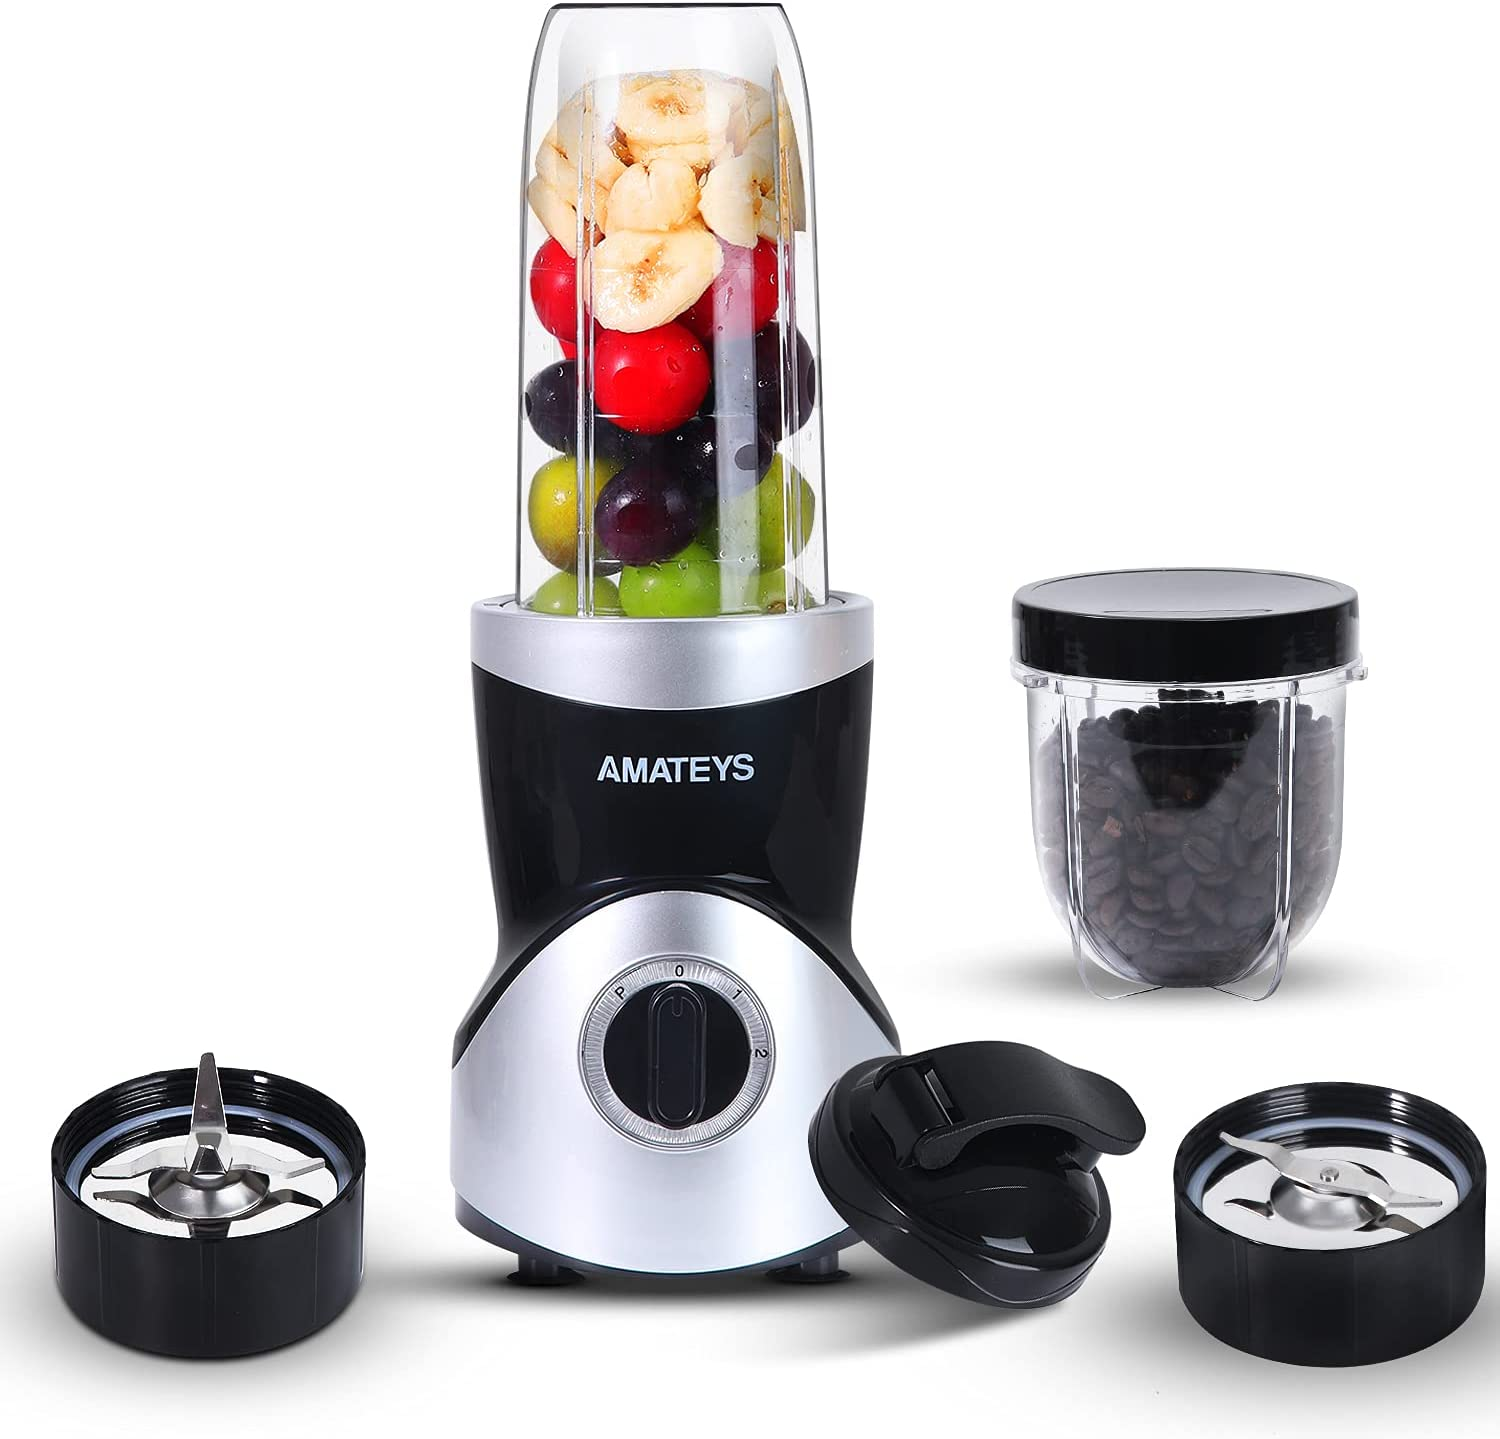 Personal Blender for Shakes and Smoothies 350 Watts, Professional Kitchen Blender Set with Blending & Grinding Blades, Portable Coffee Grinder with 10oz + 24oz Travel Bottles and Lids, 2 Speeds with Pulse Function Juice Blender AMATEYS